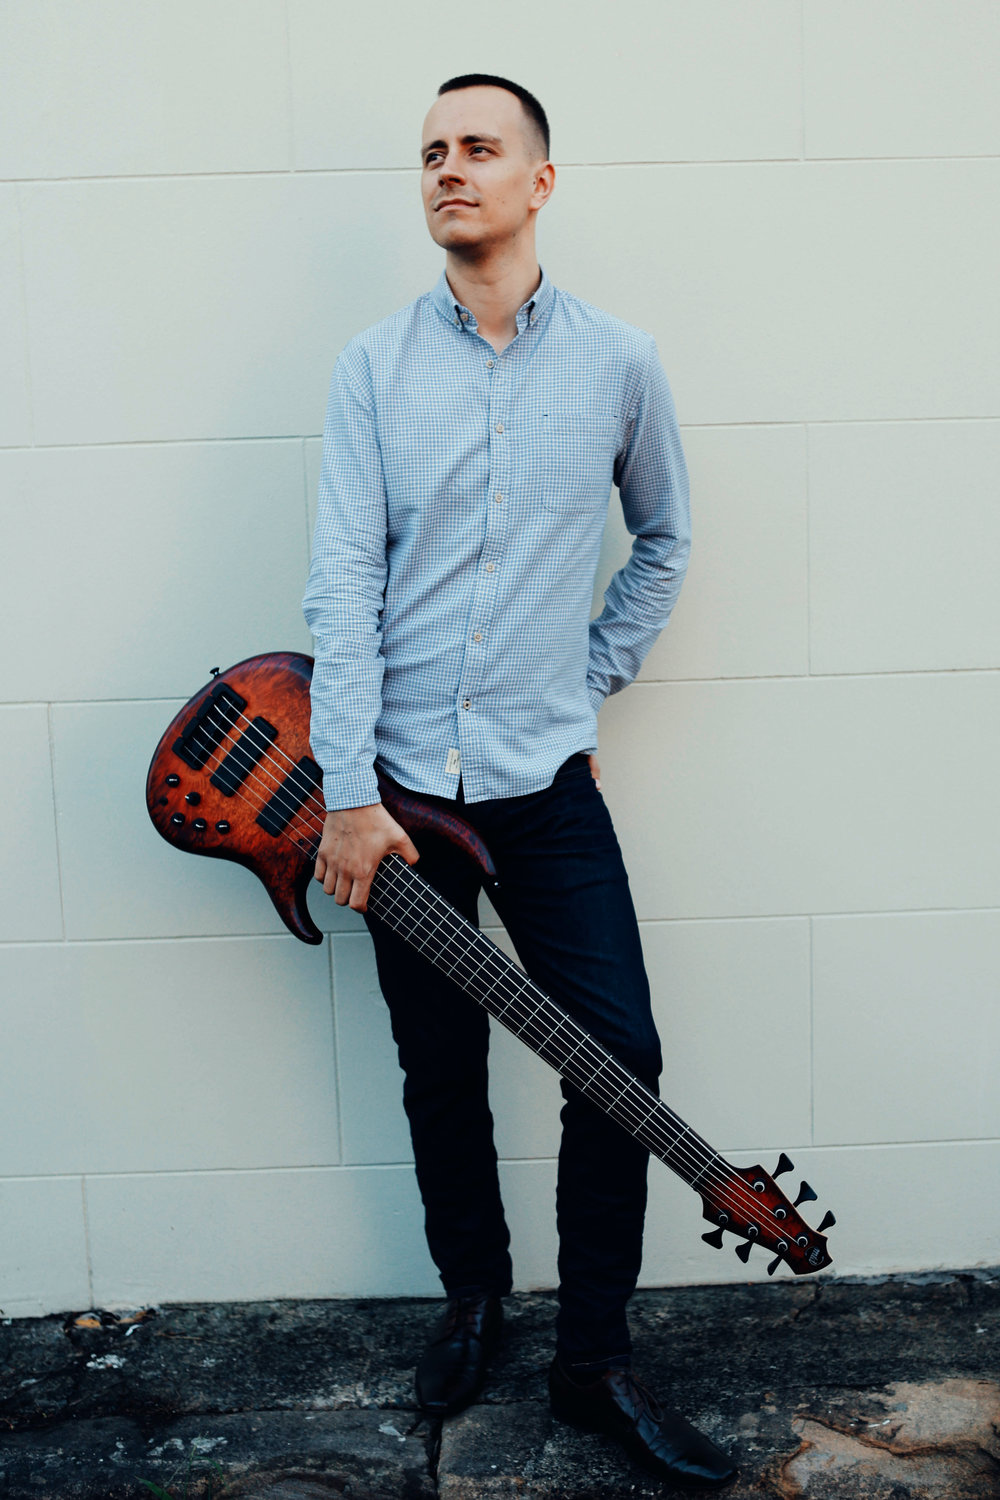 Lindsay - is a musician from Sydney, Australia. Here you'll find info, news, media and access to his vast and ever growing Bass Guitar transcription library.